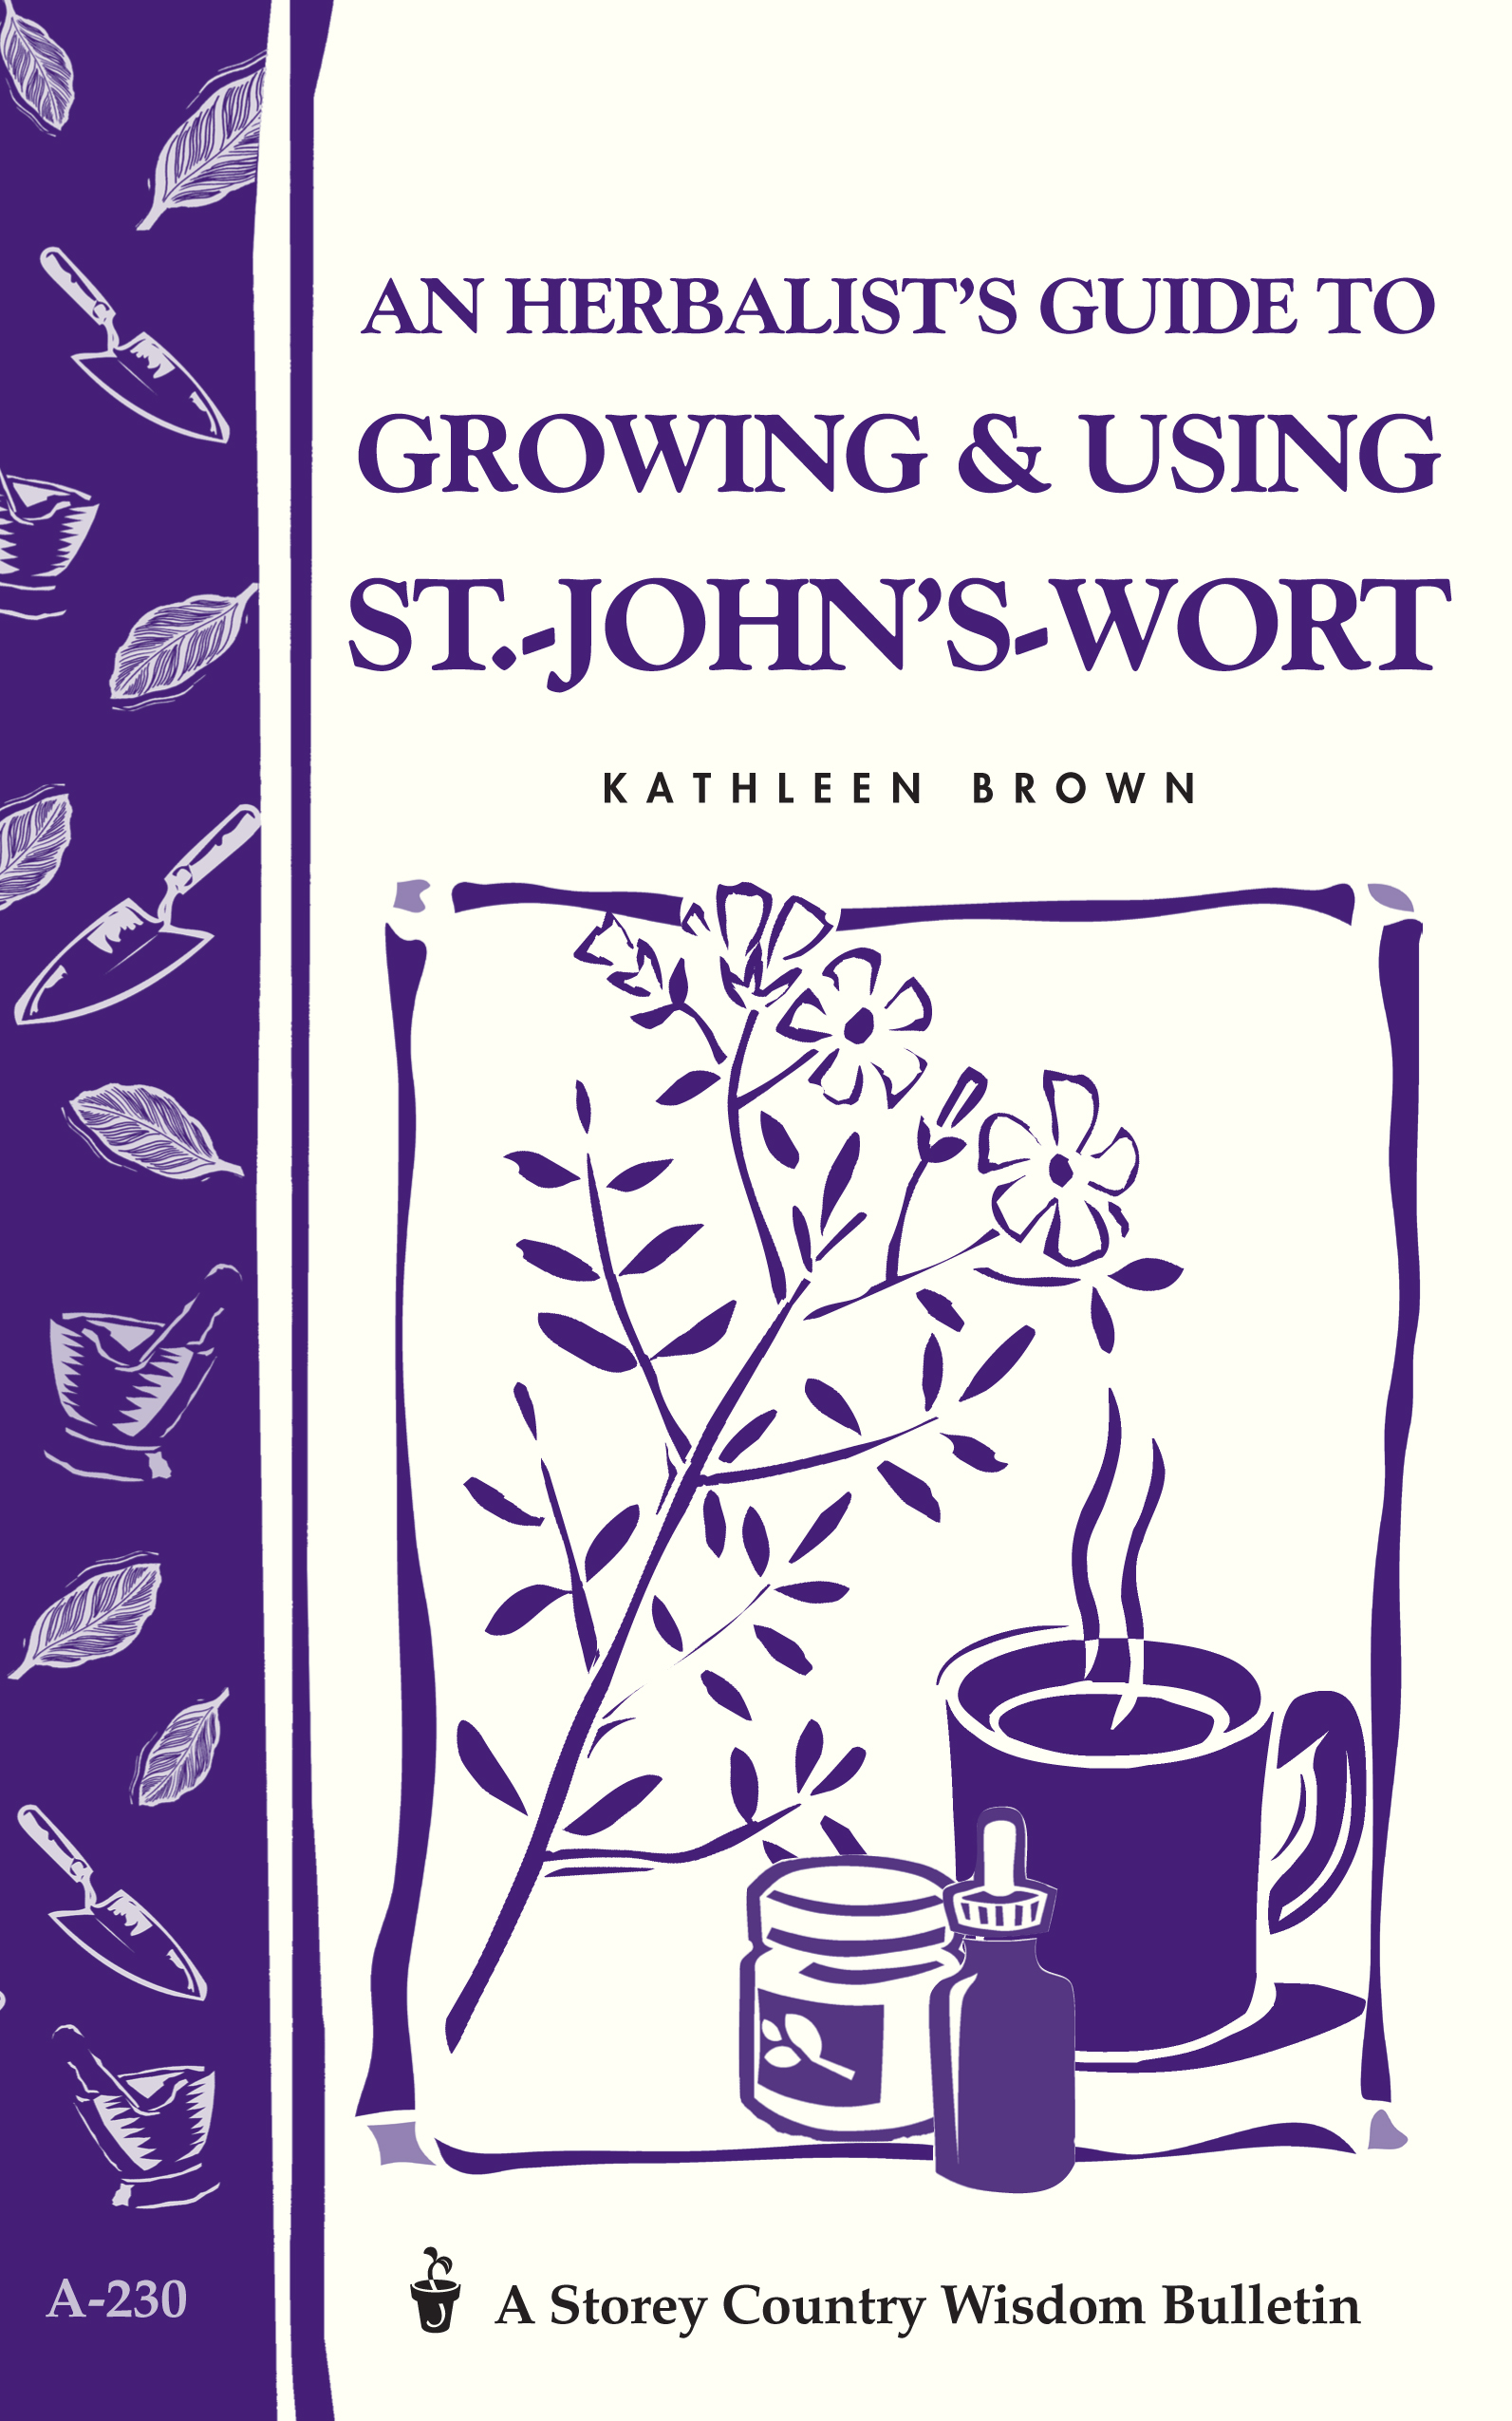 An Herbalist's Guide to Growing & Using St.-John's-Wort Storey Country Wisdom Bulletin A-230 - Kathleen Brown